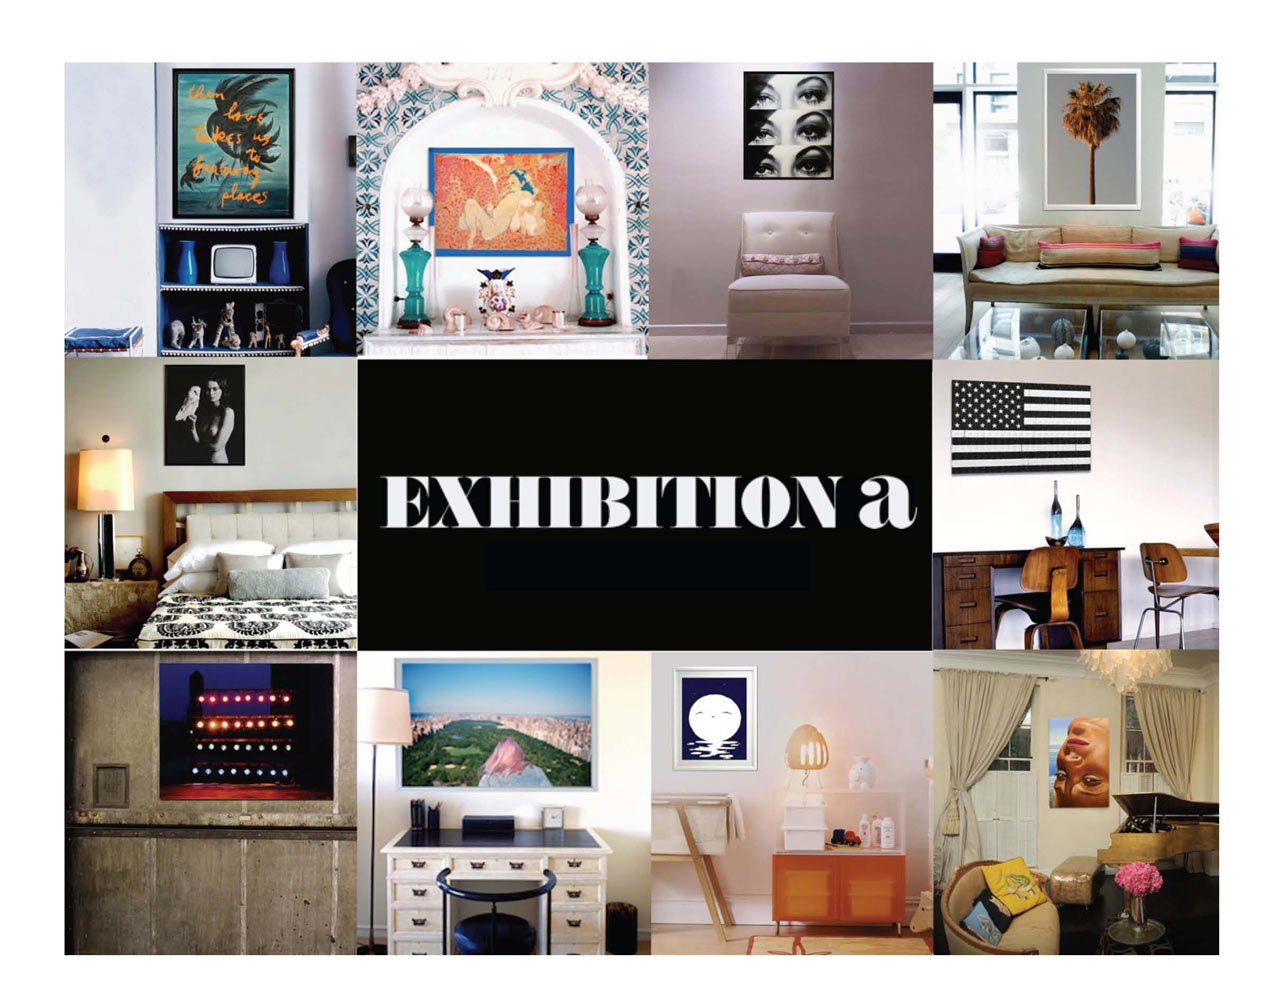 F5-Cynthia-Rowley-5-Exhibition-A-art